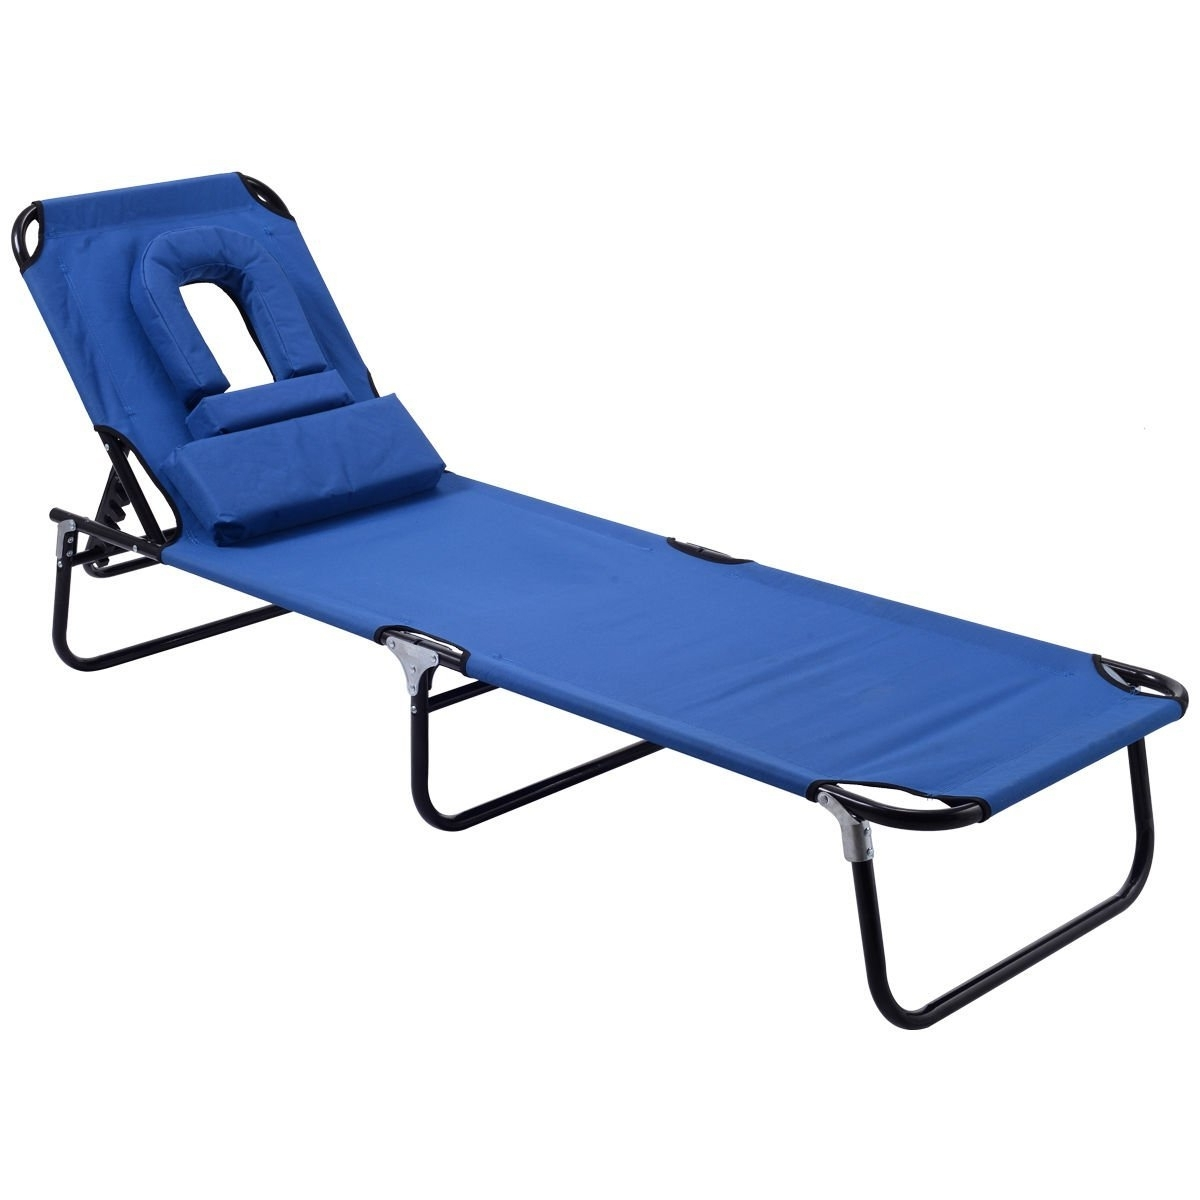 Beach Chaise Lounges Pertaining To Well Known Amazon: Goplus Folding Chaise Lounge Chair Bed Outdoor Patio (View 3 of 15)